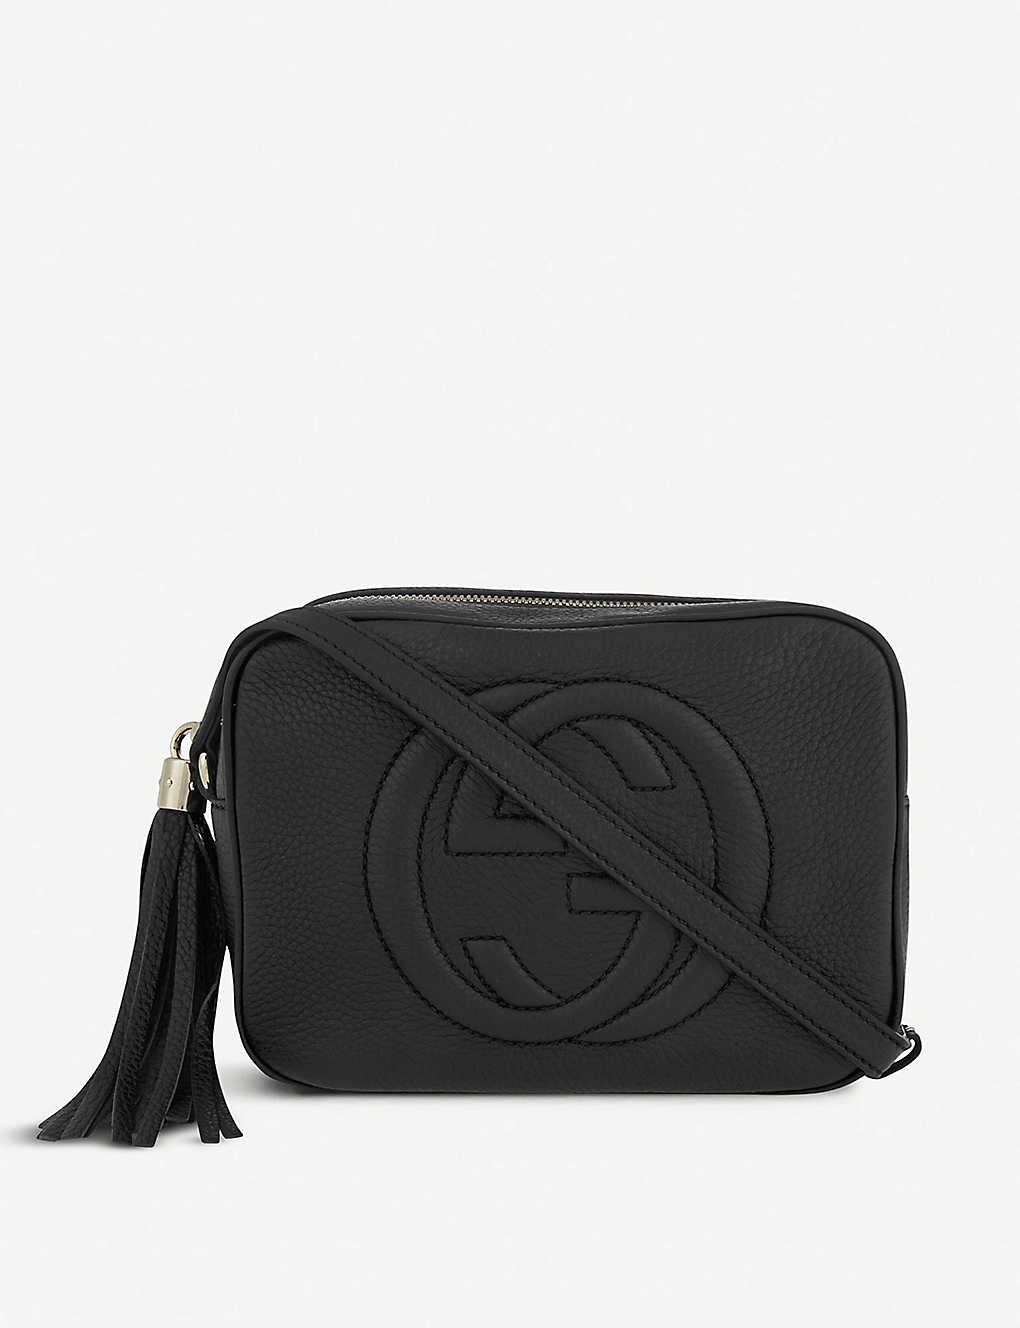 7fd02e3544067e GUCCI - Soho leather cross-body bag | Selfridges.com